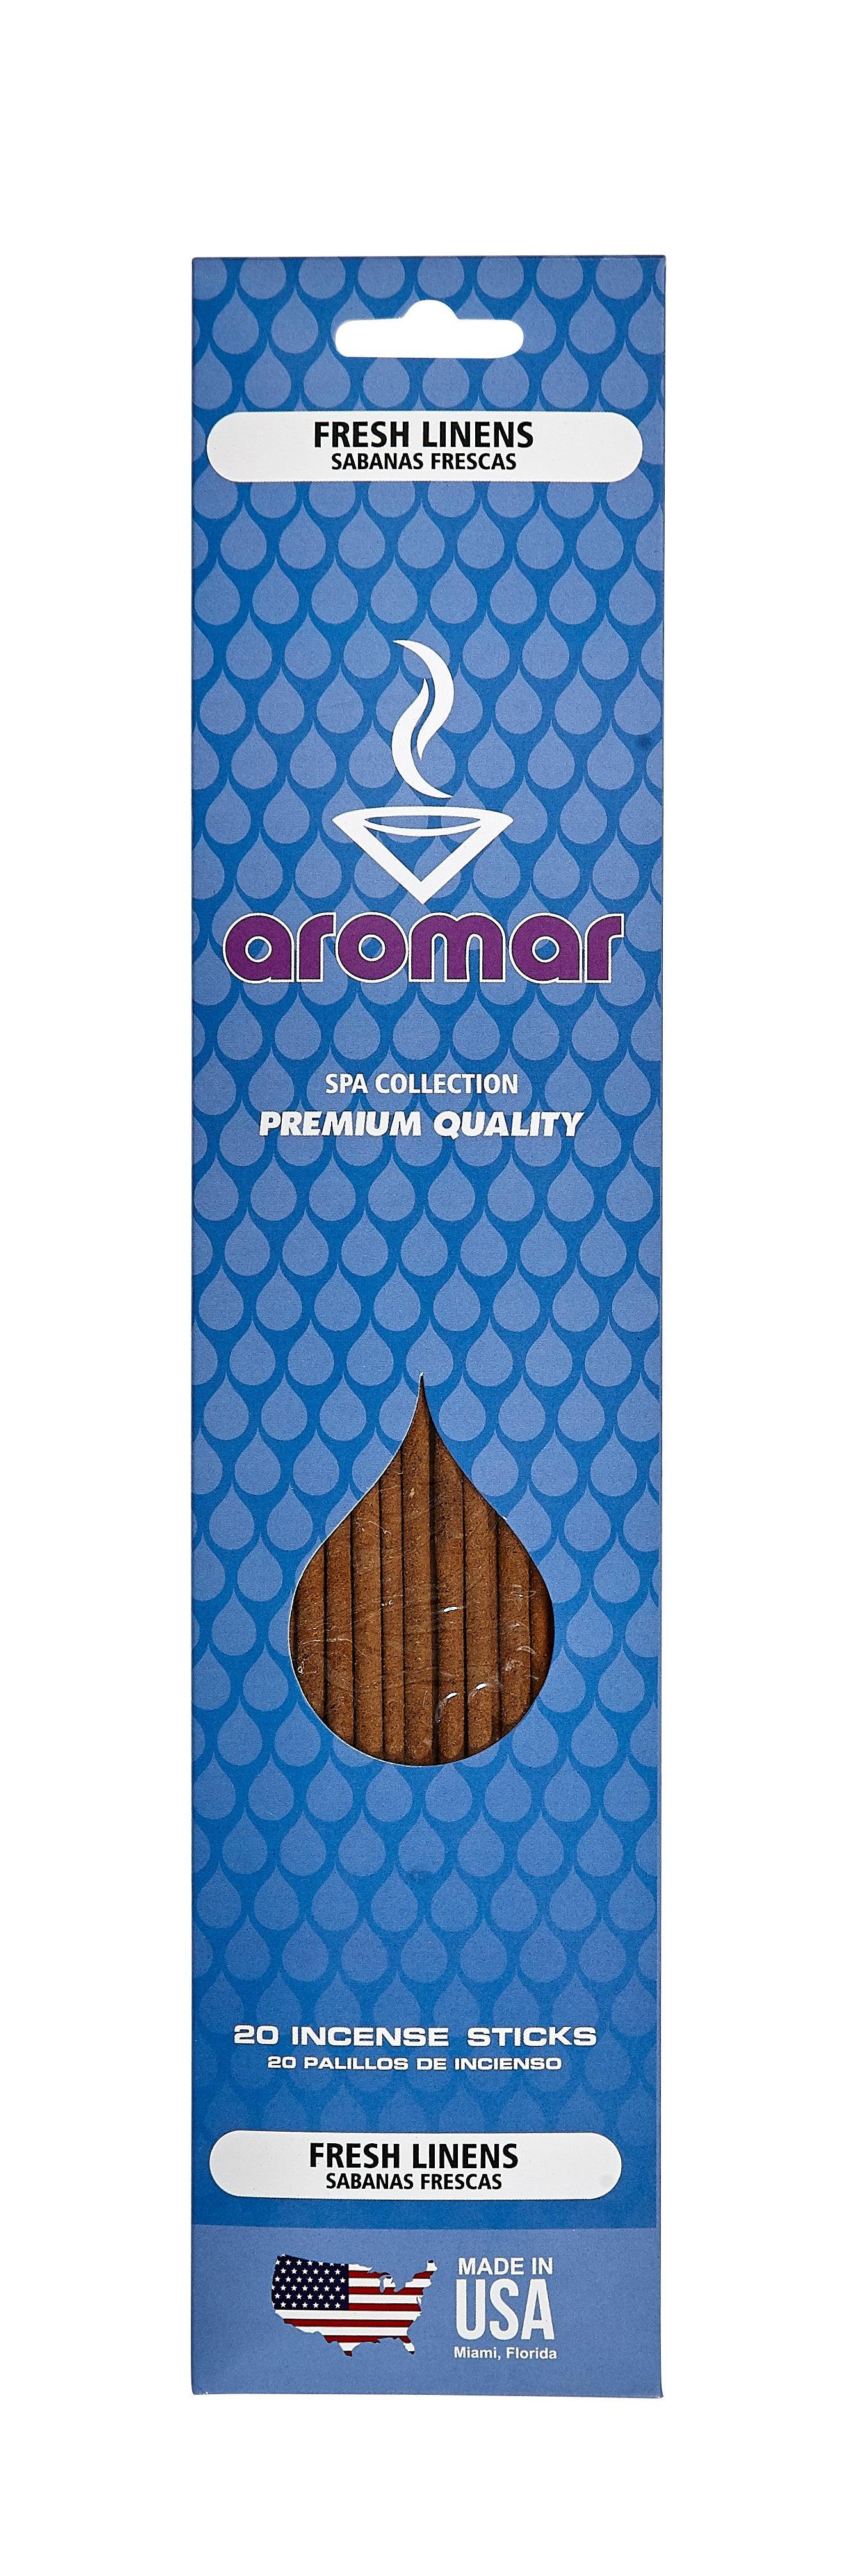 Fresh Linens Premium Hand Dipped Pre-Packed Incense